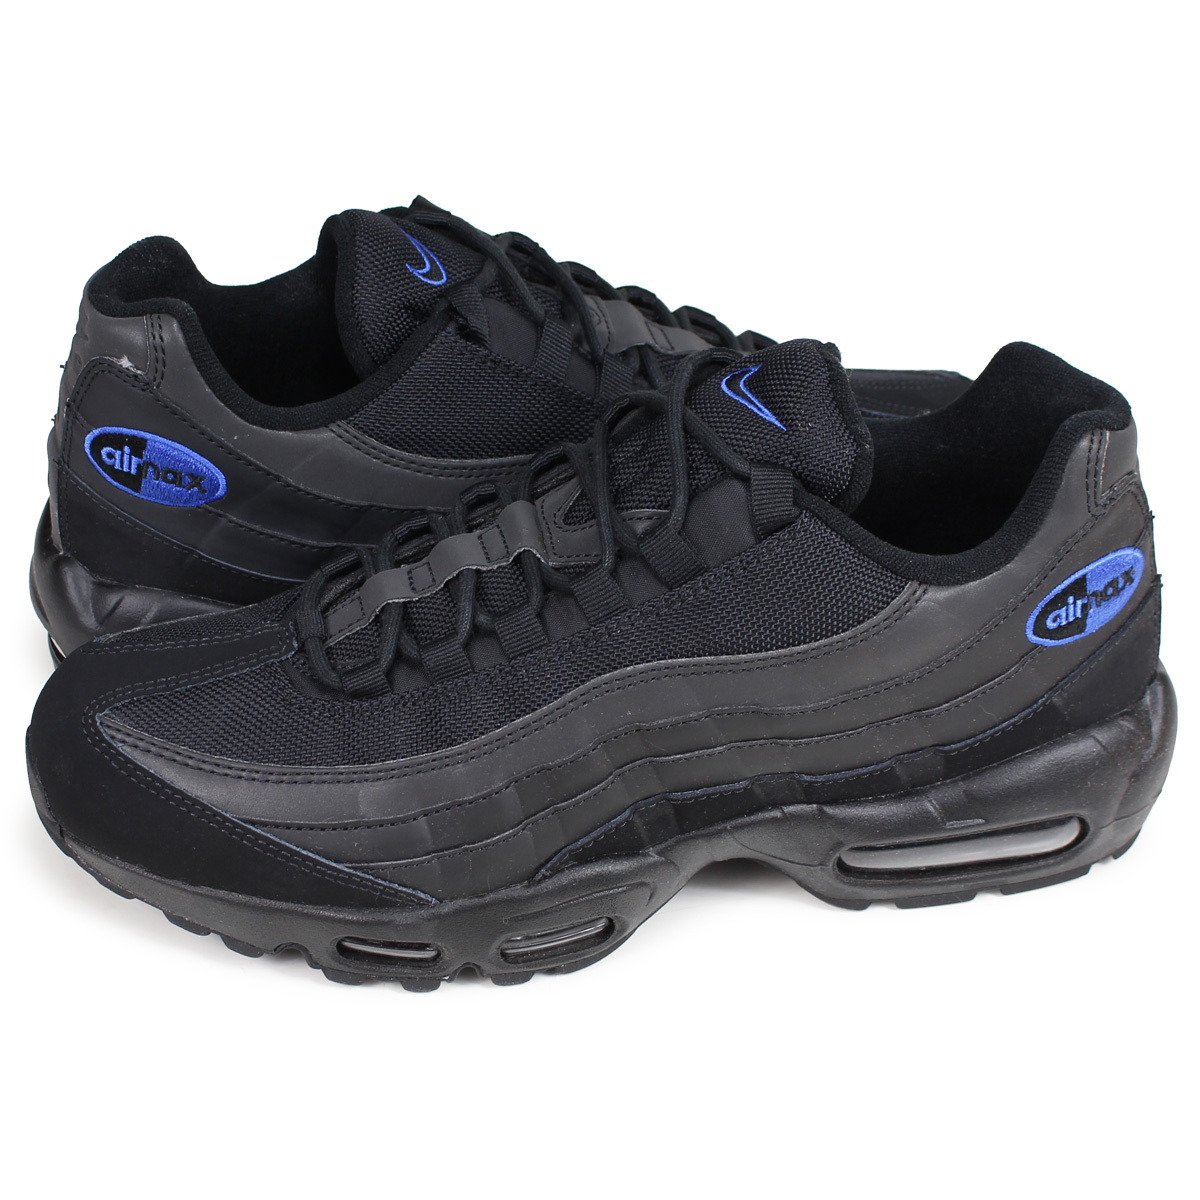 Nike NIKE Air Max 95 sneakers men AIR MAX 95 PREMIUM SE black black BQ3168 002